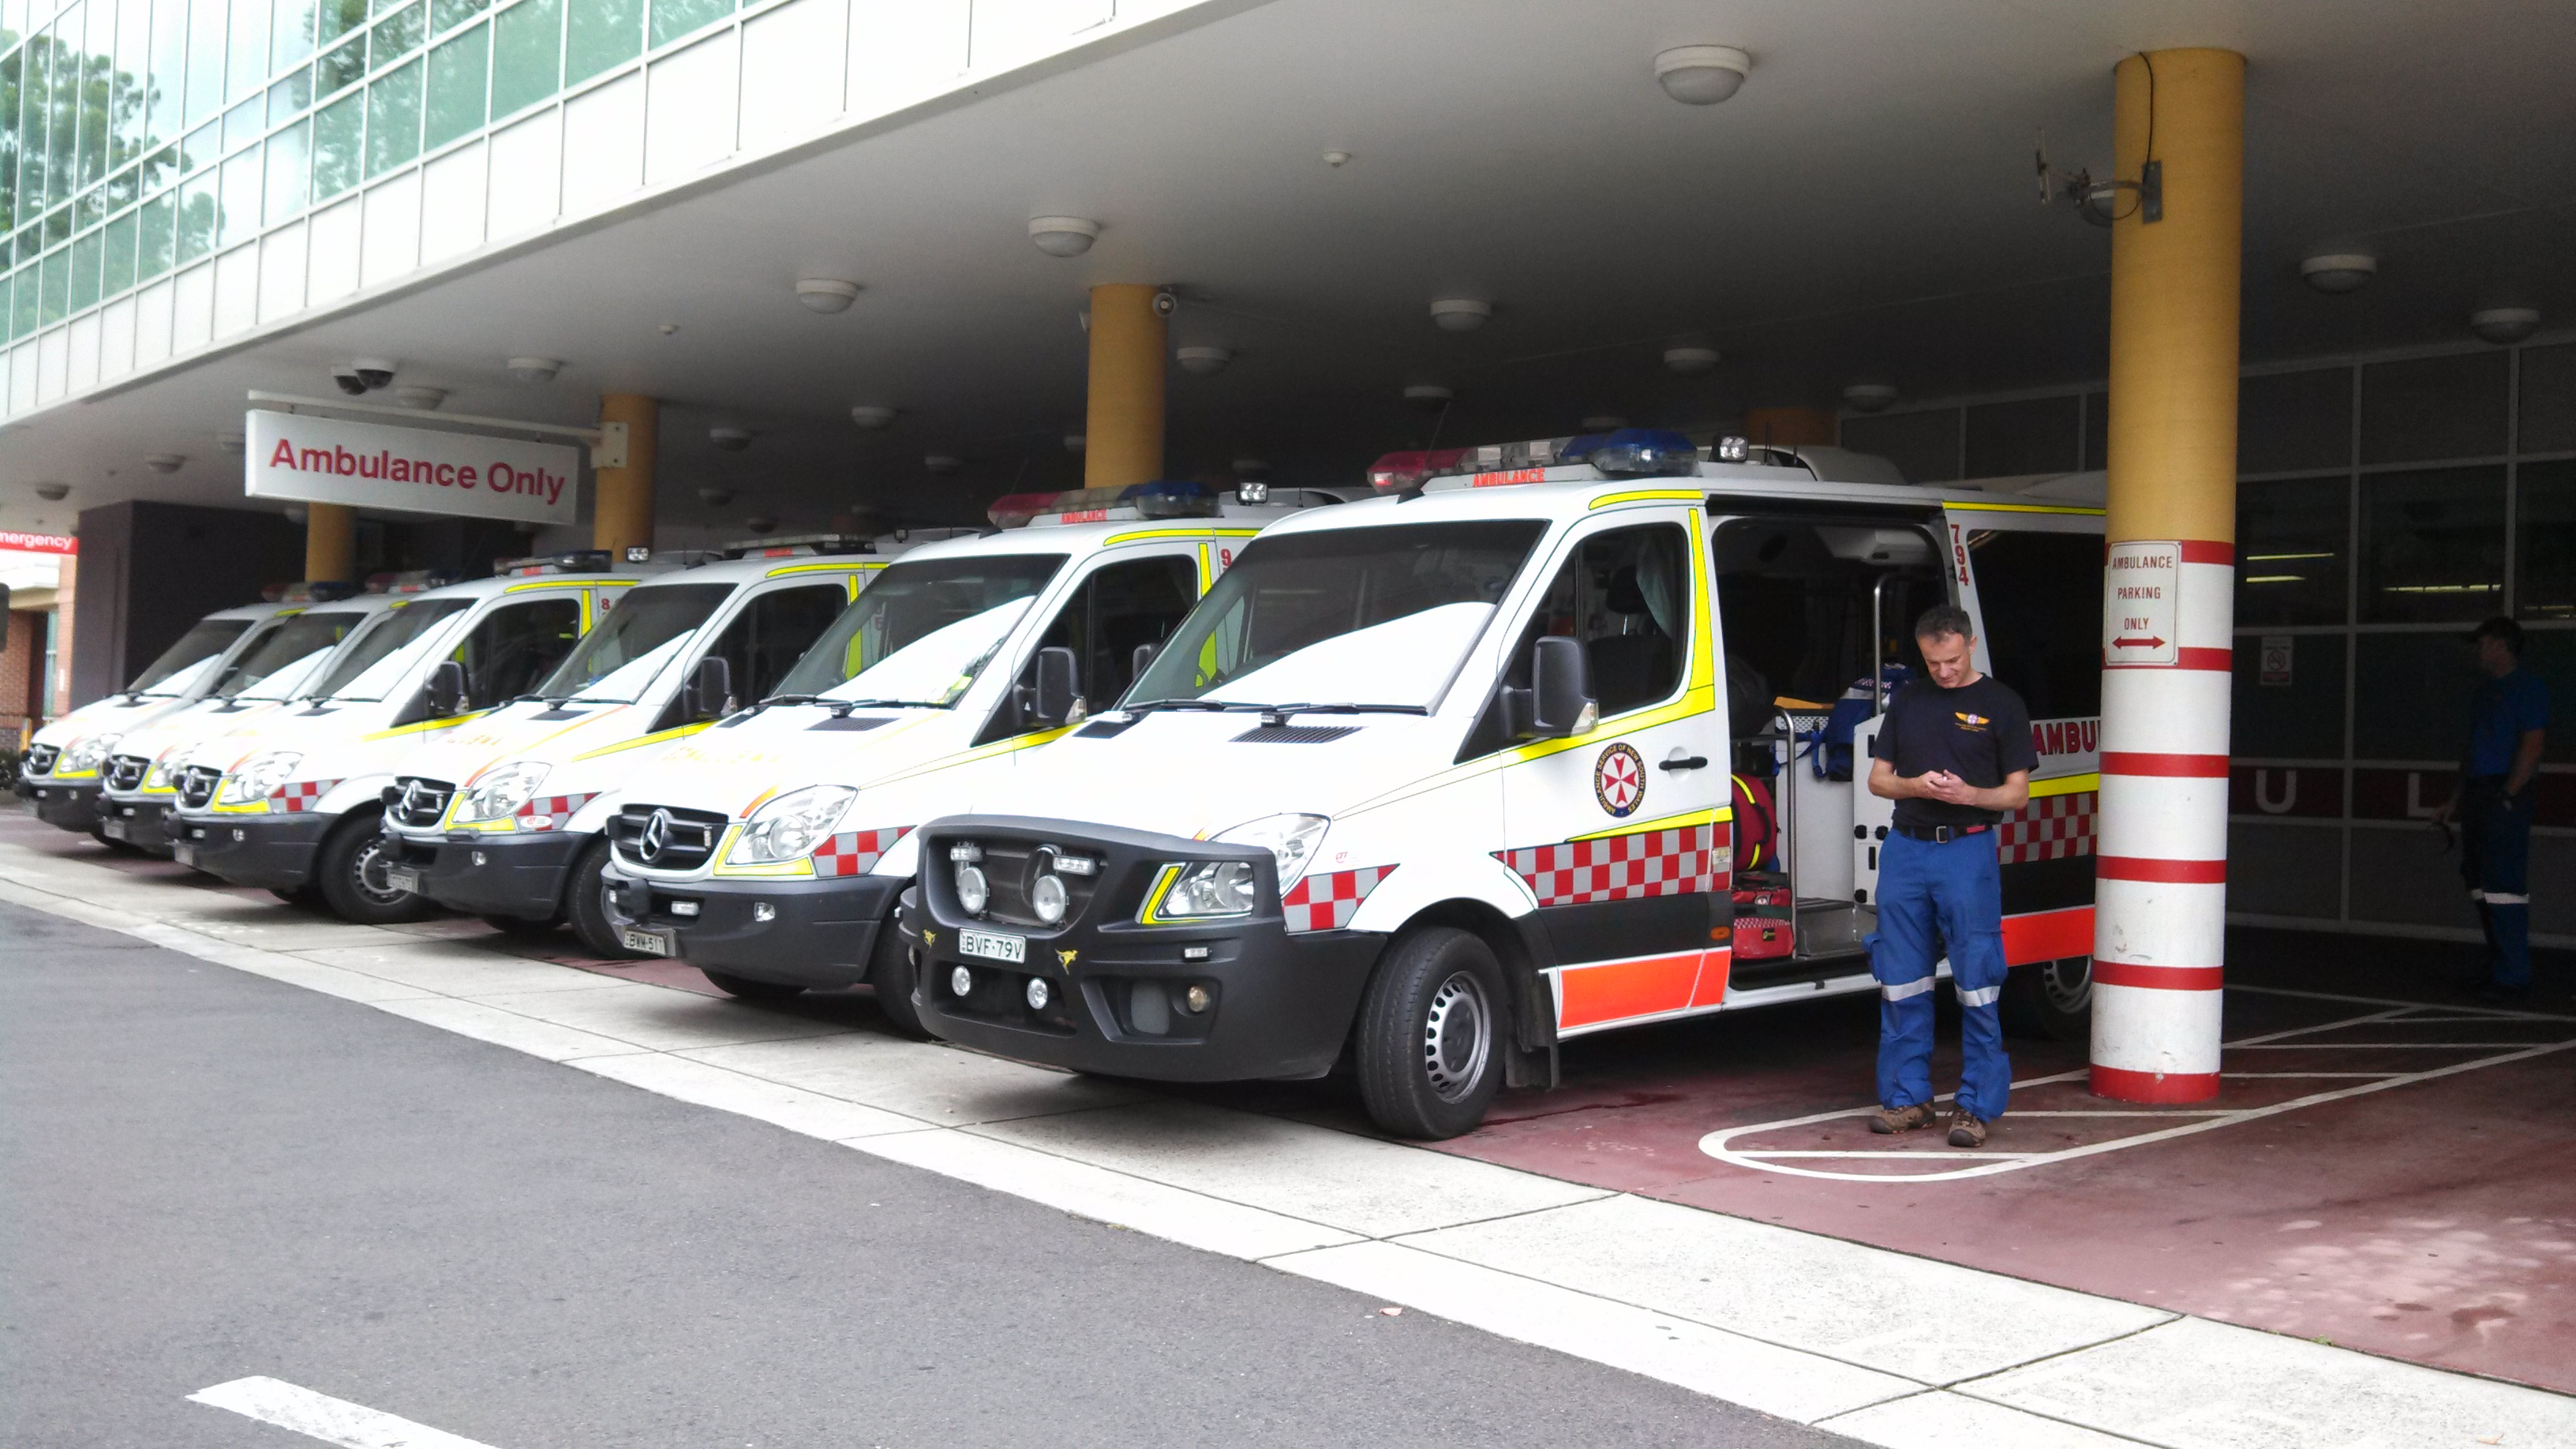 ASNSW ambulances